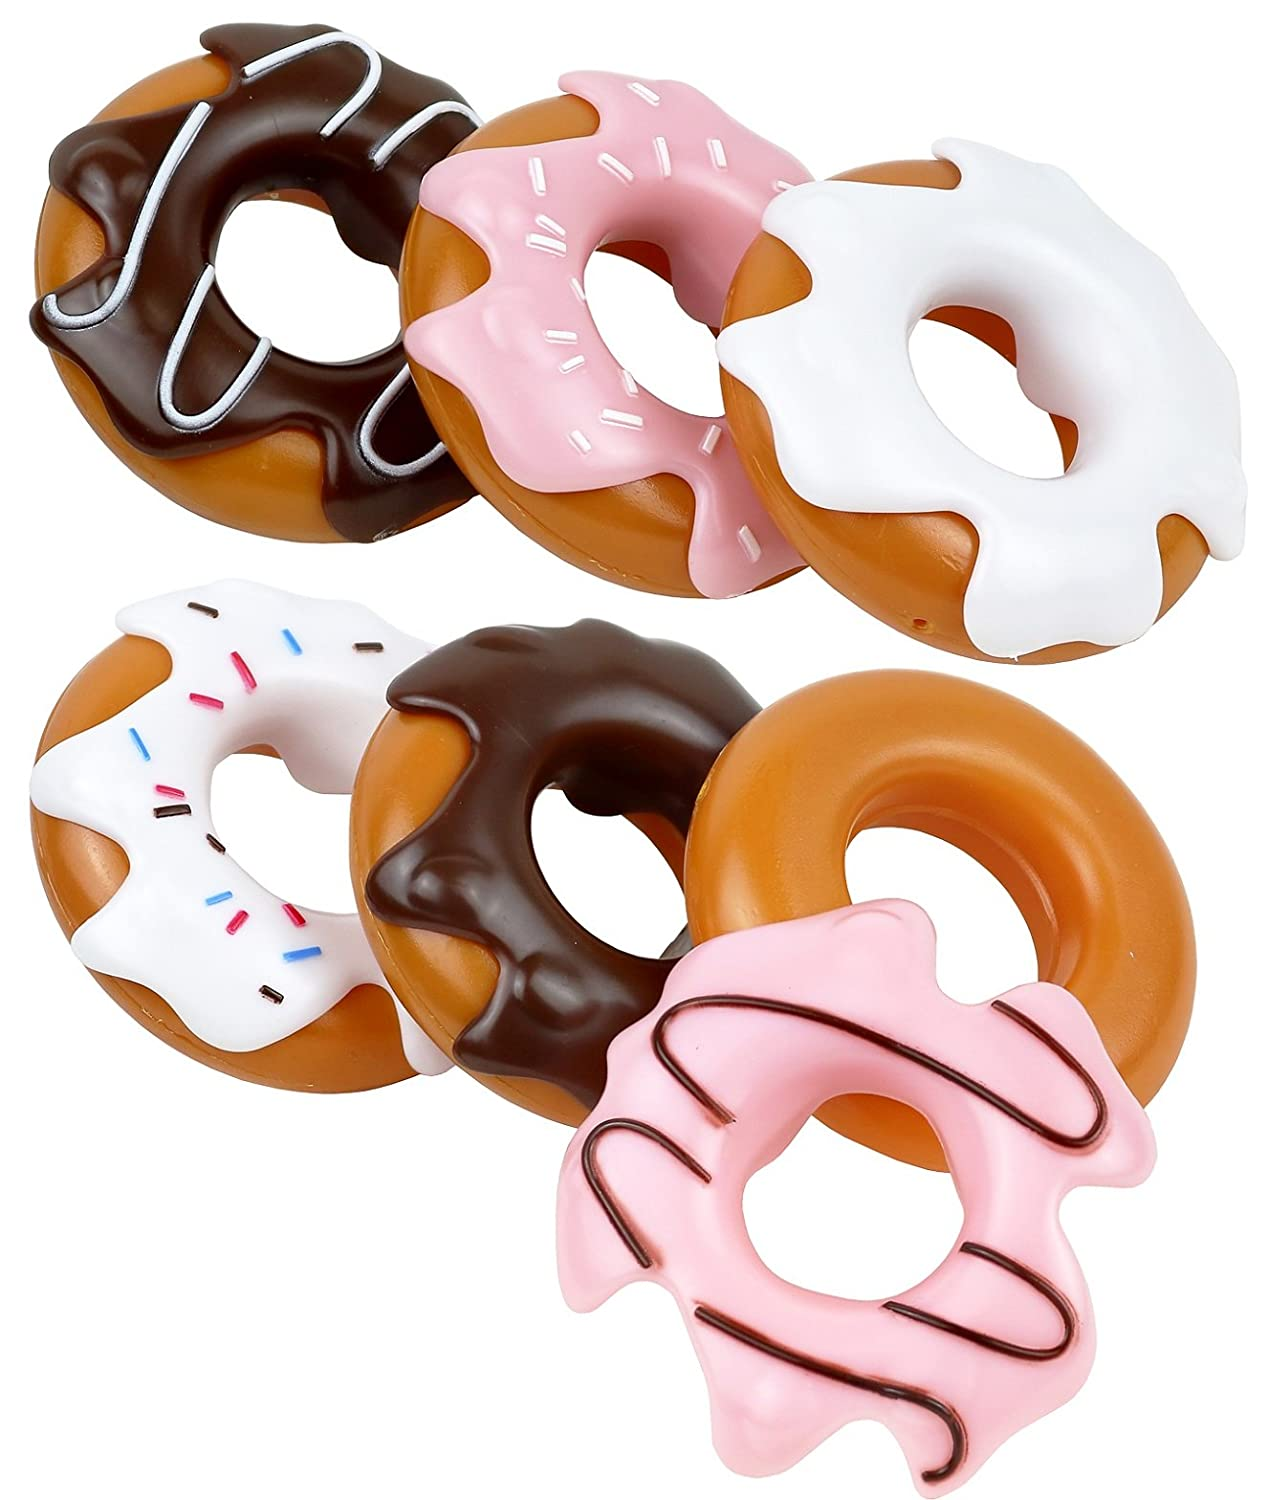 Click N Play Set of 6 Assorted Pretend Play Donuts Set With Removable Icing, Sprinkle Toppings CNP84446